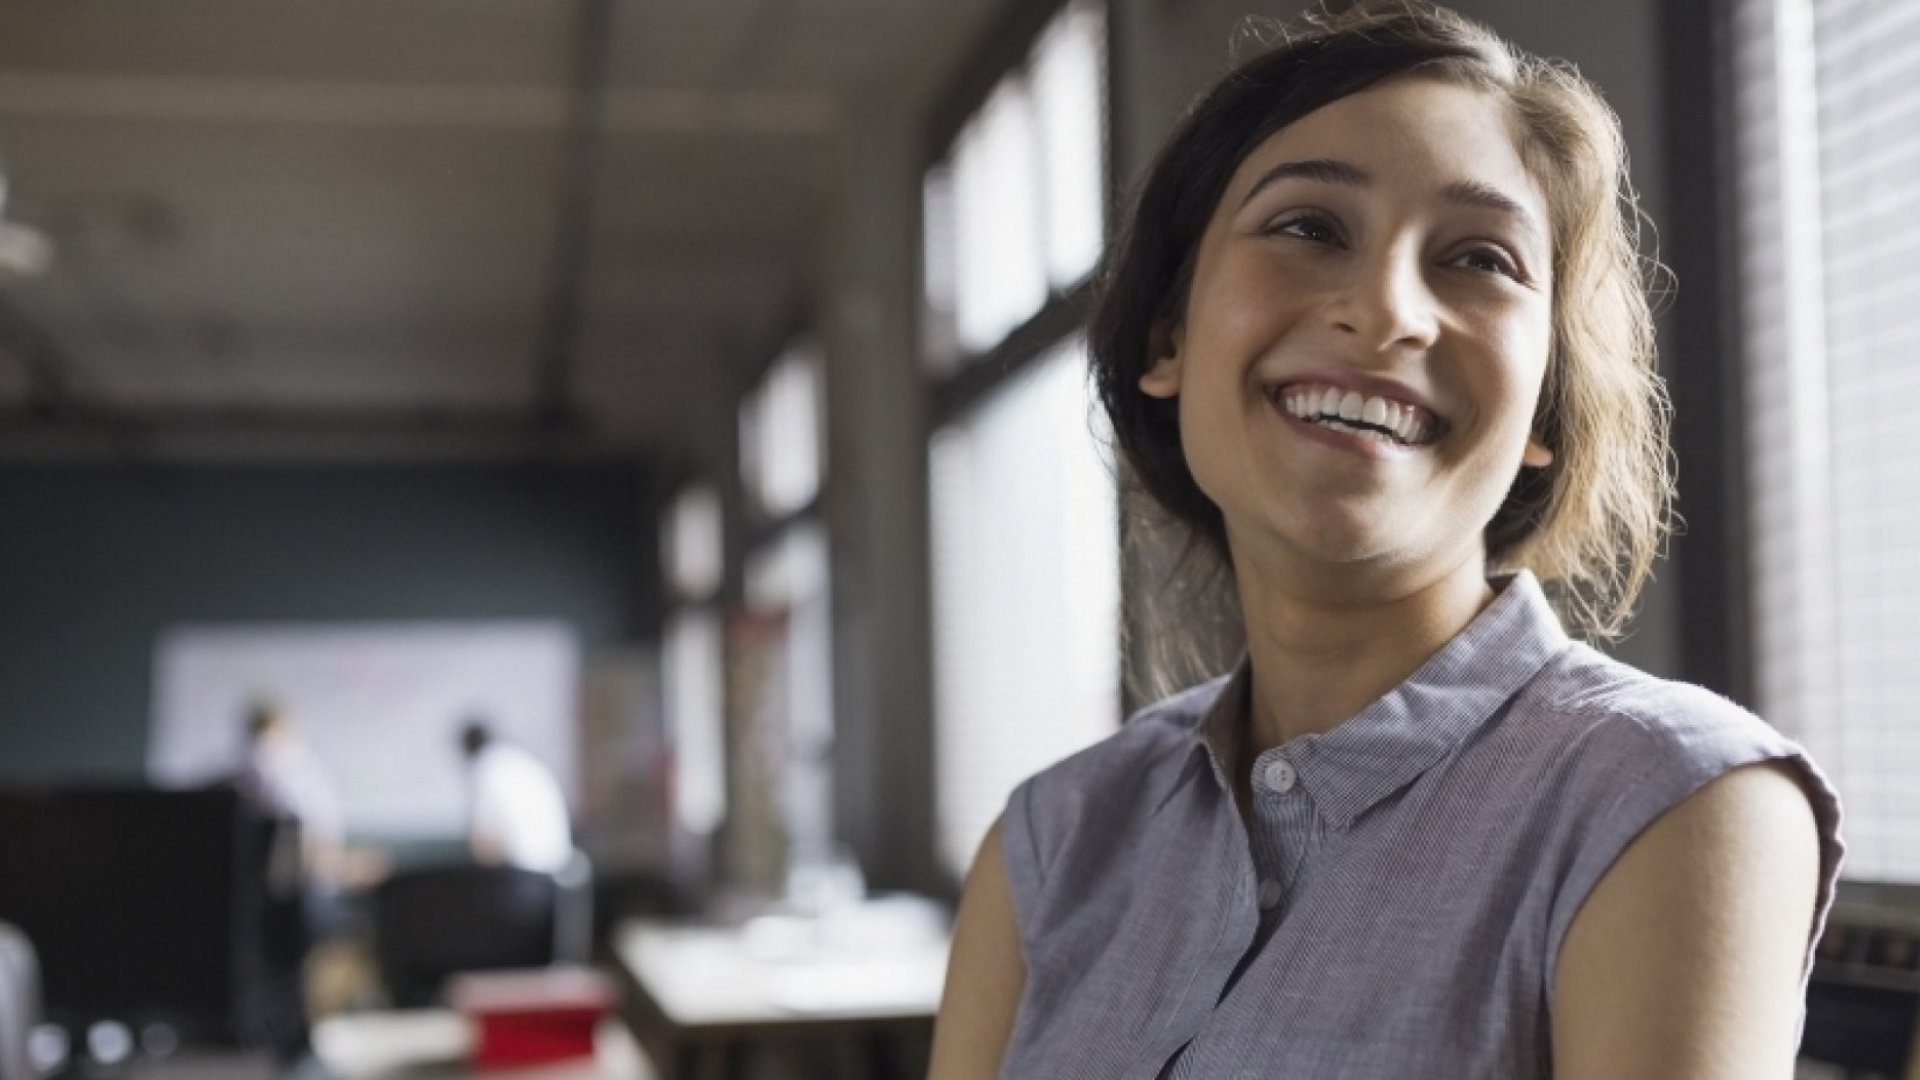 You Can Get the Right Personality for Success